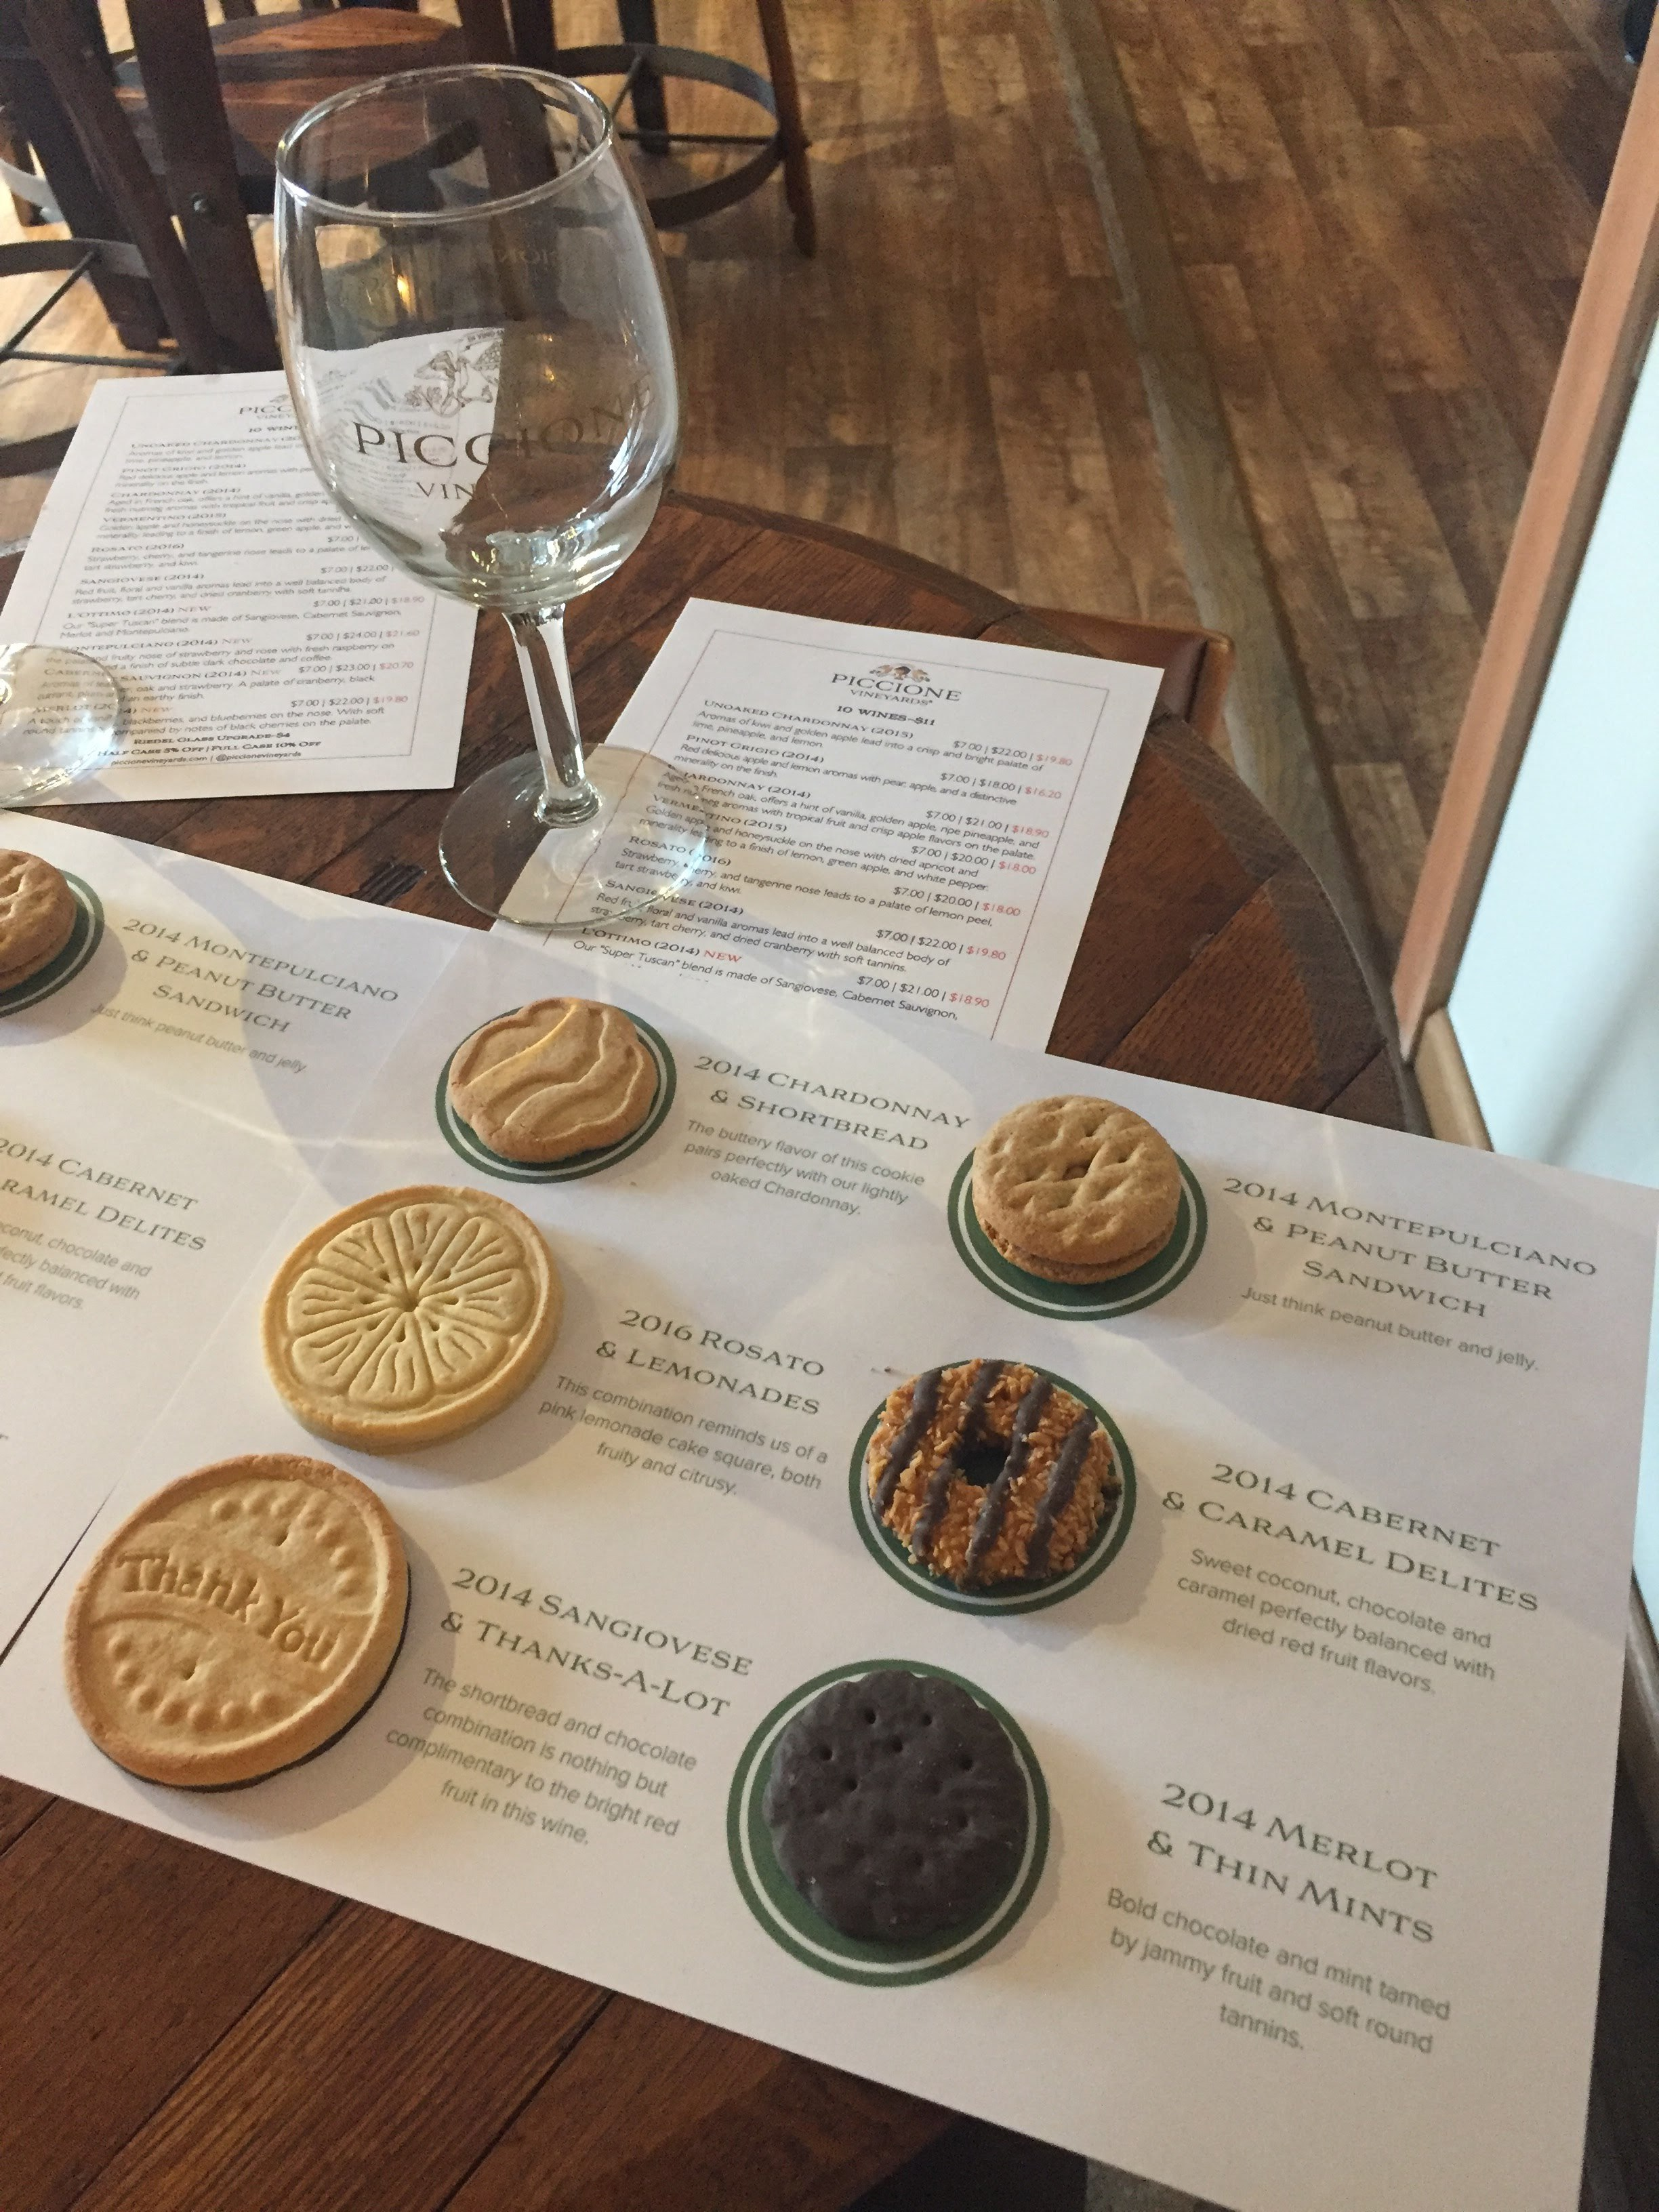 Girl Scout cookies and wine pairing. We were in heaven.